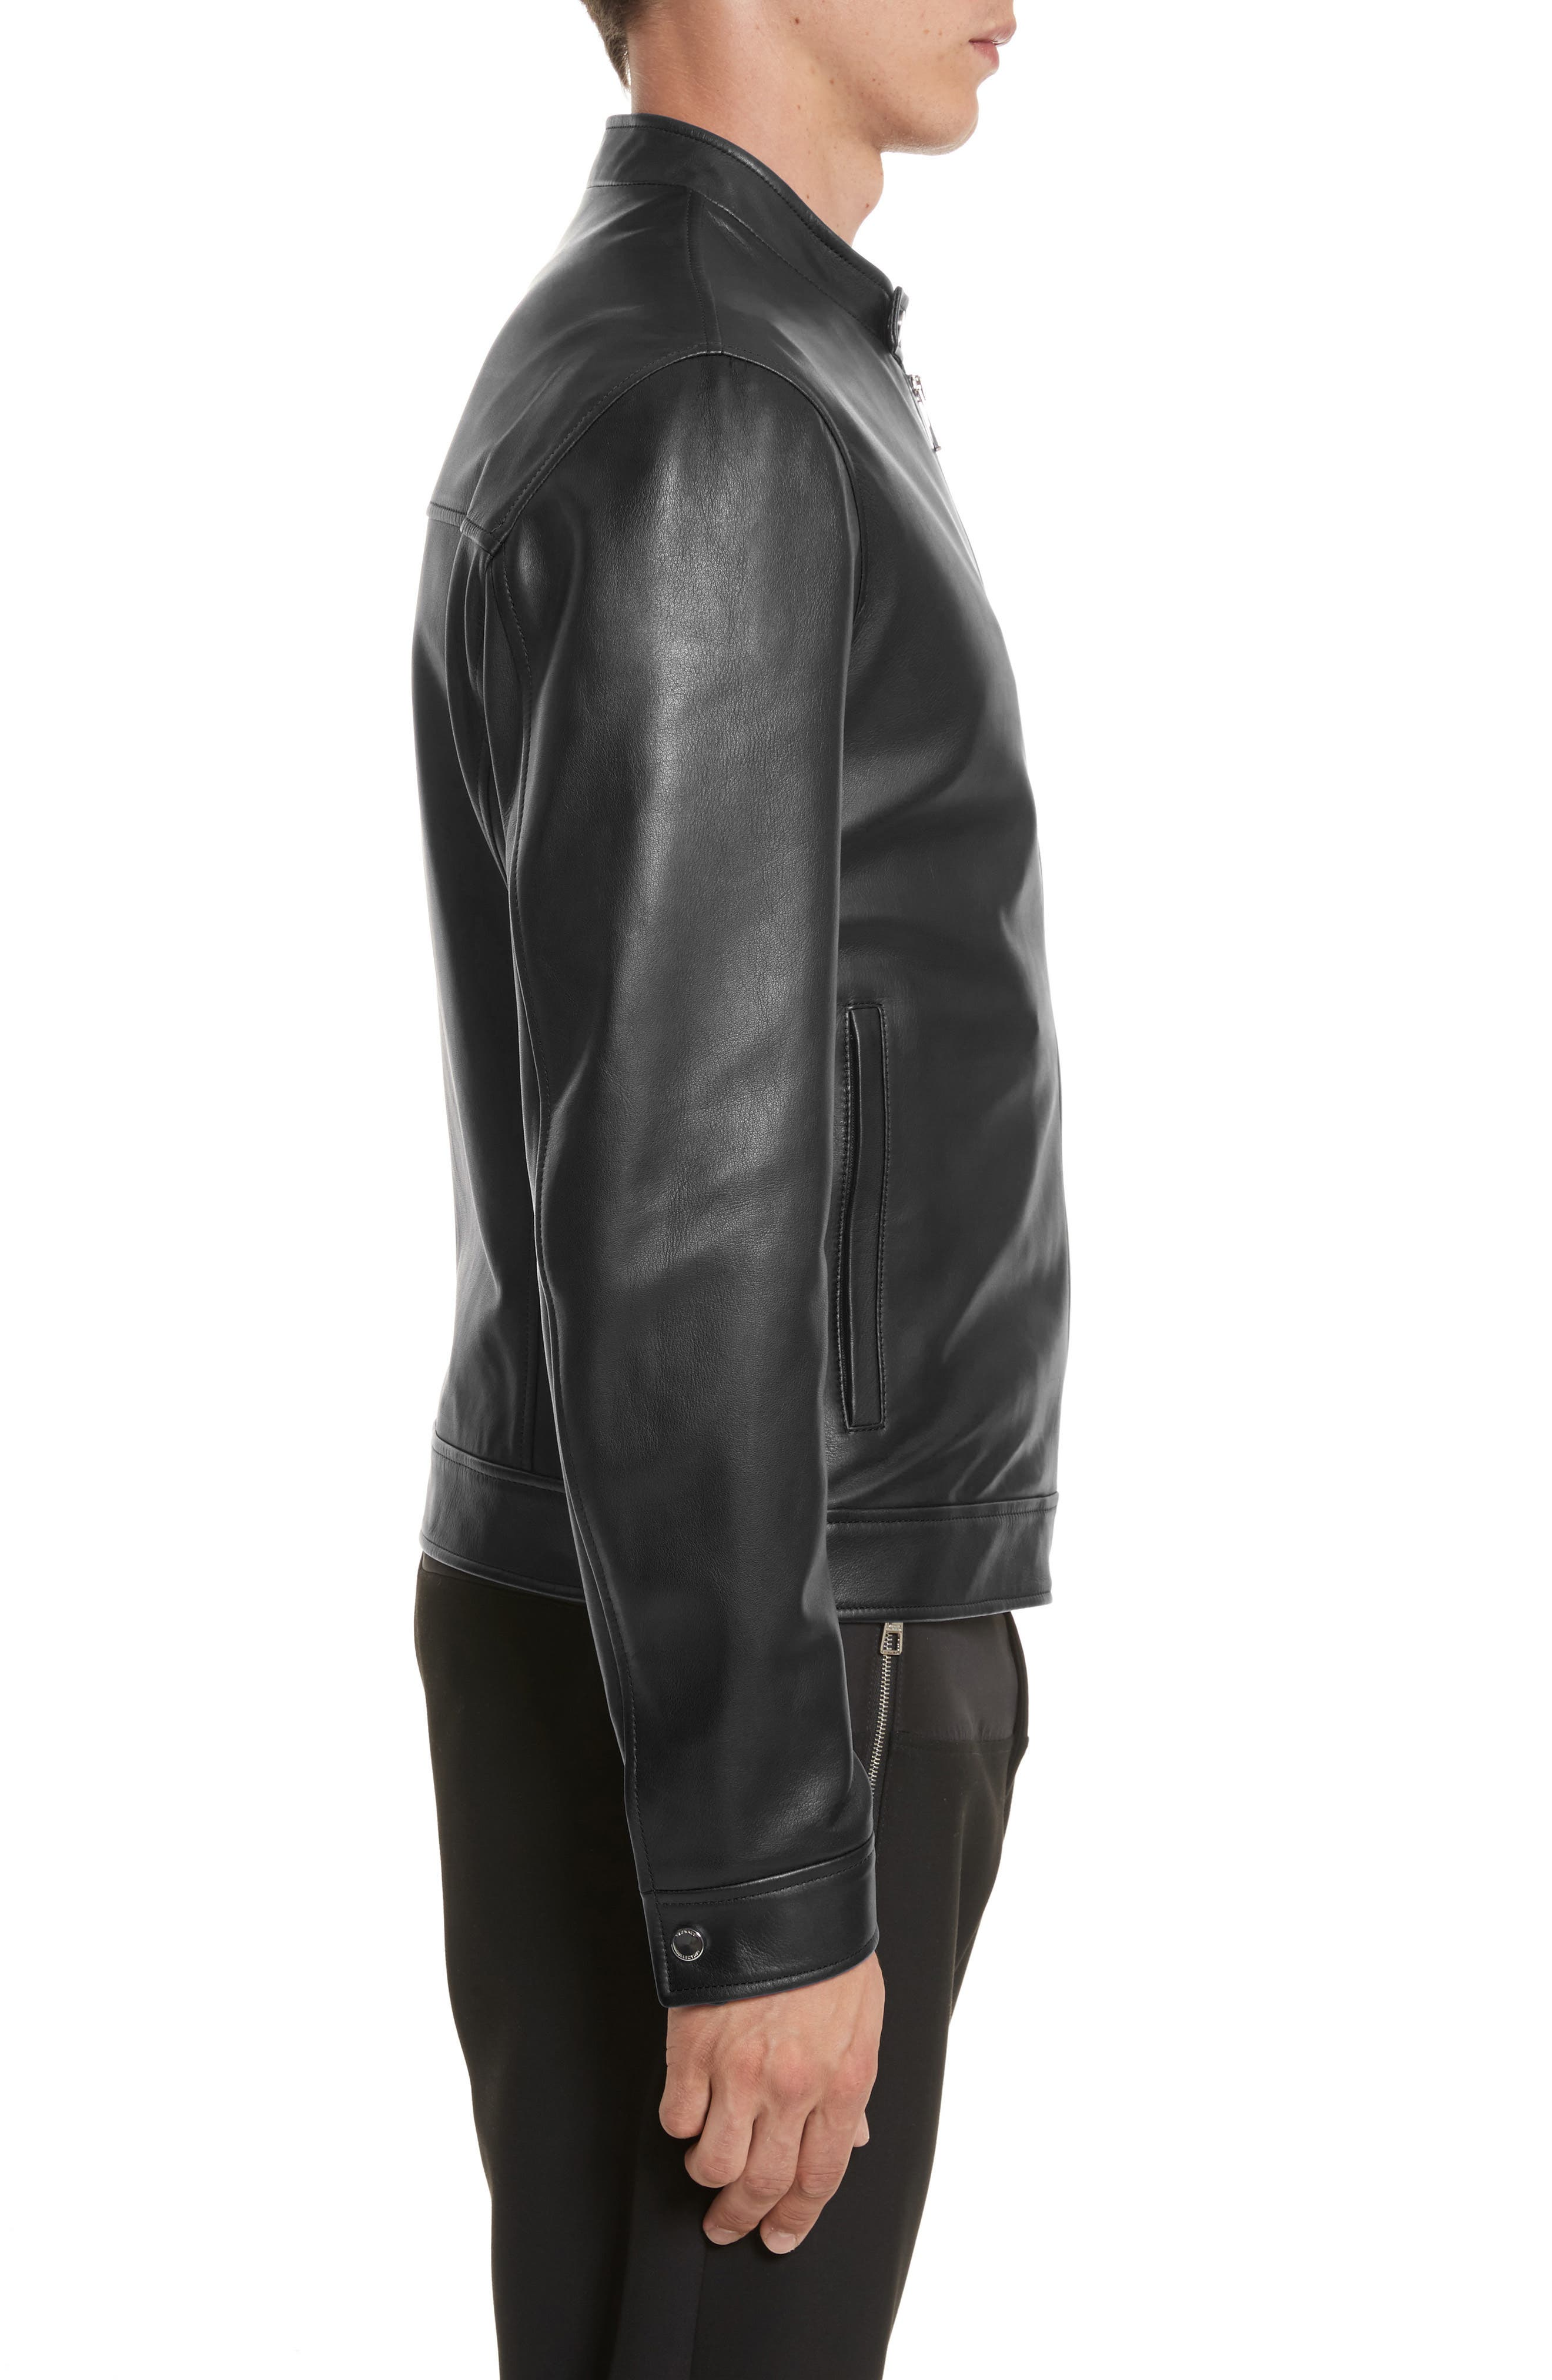 VERSACE COLLECTION, Café Racer Leather Jacket, Alternate thumbnail 3, color, 130